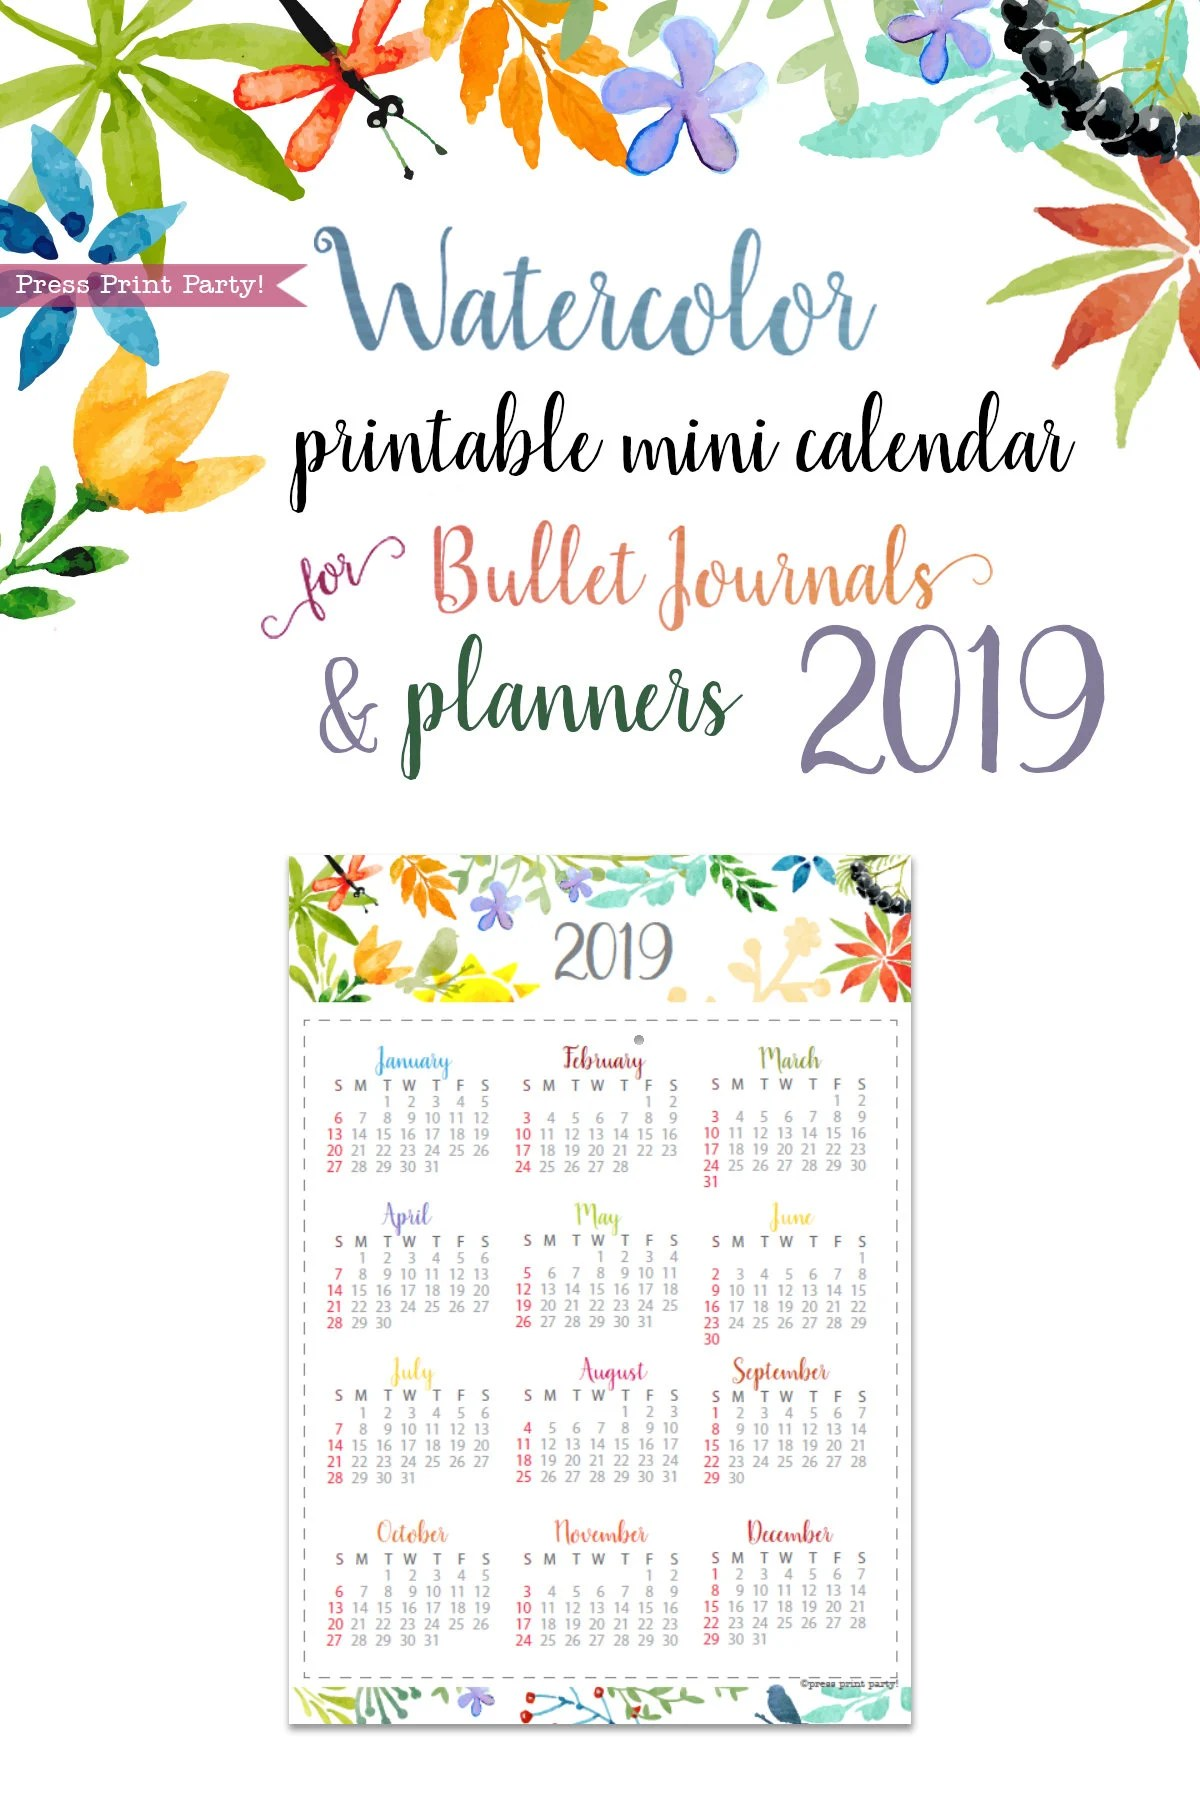 2019 Mini Calendar for Bullet Journals  Planners Printable